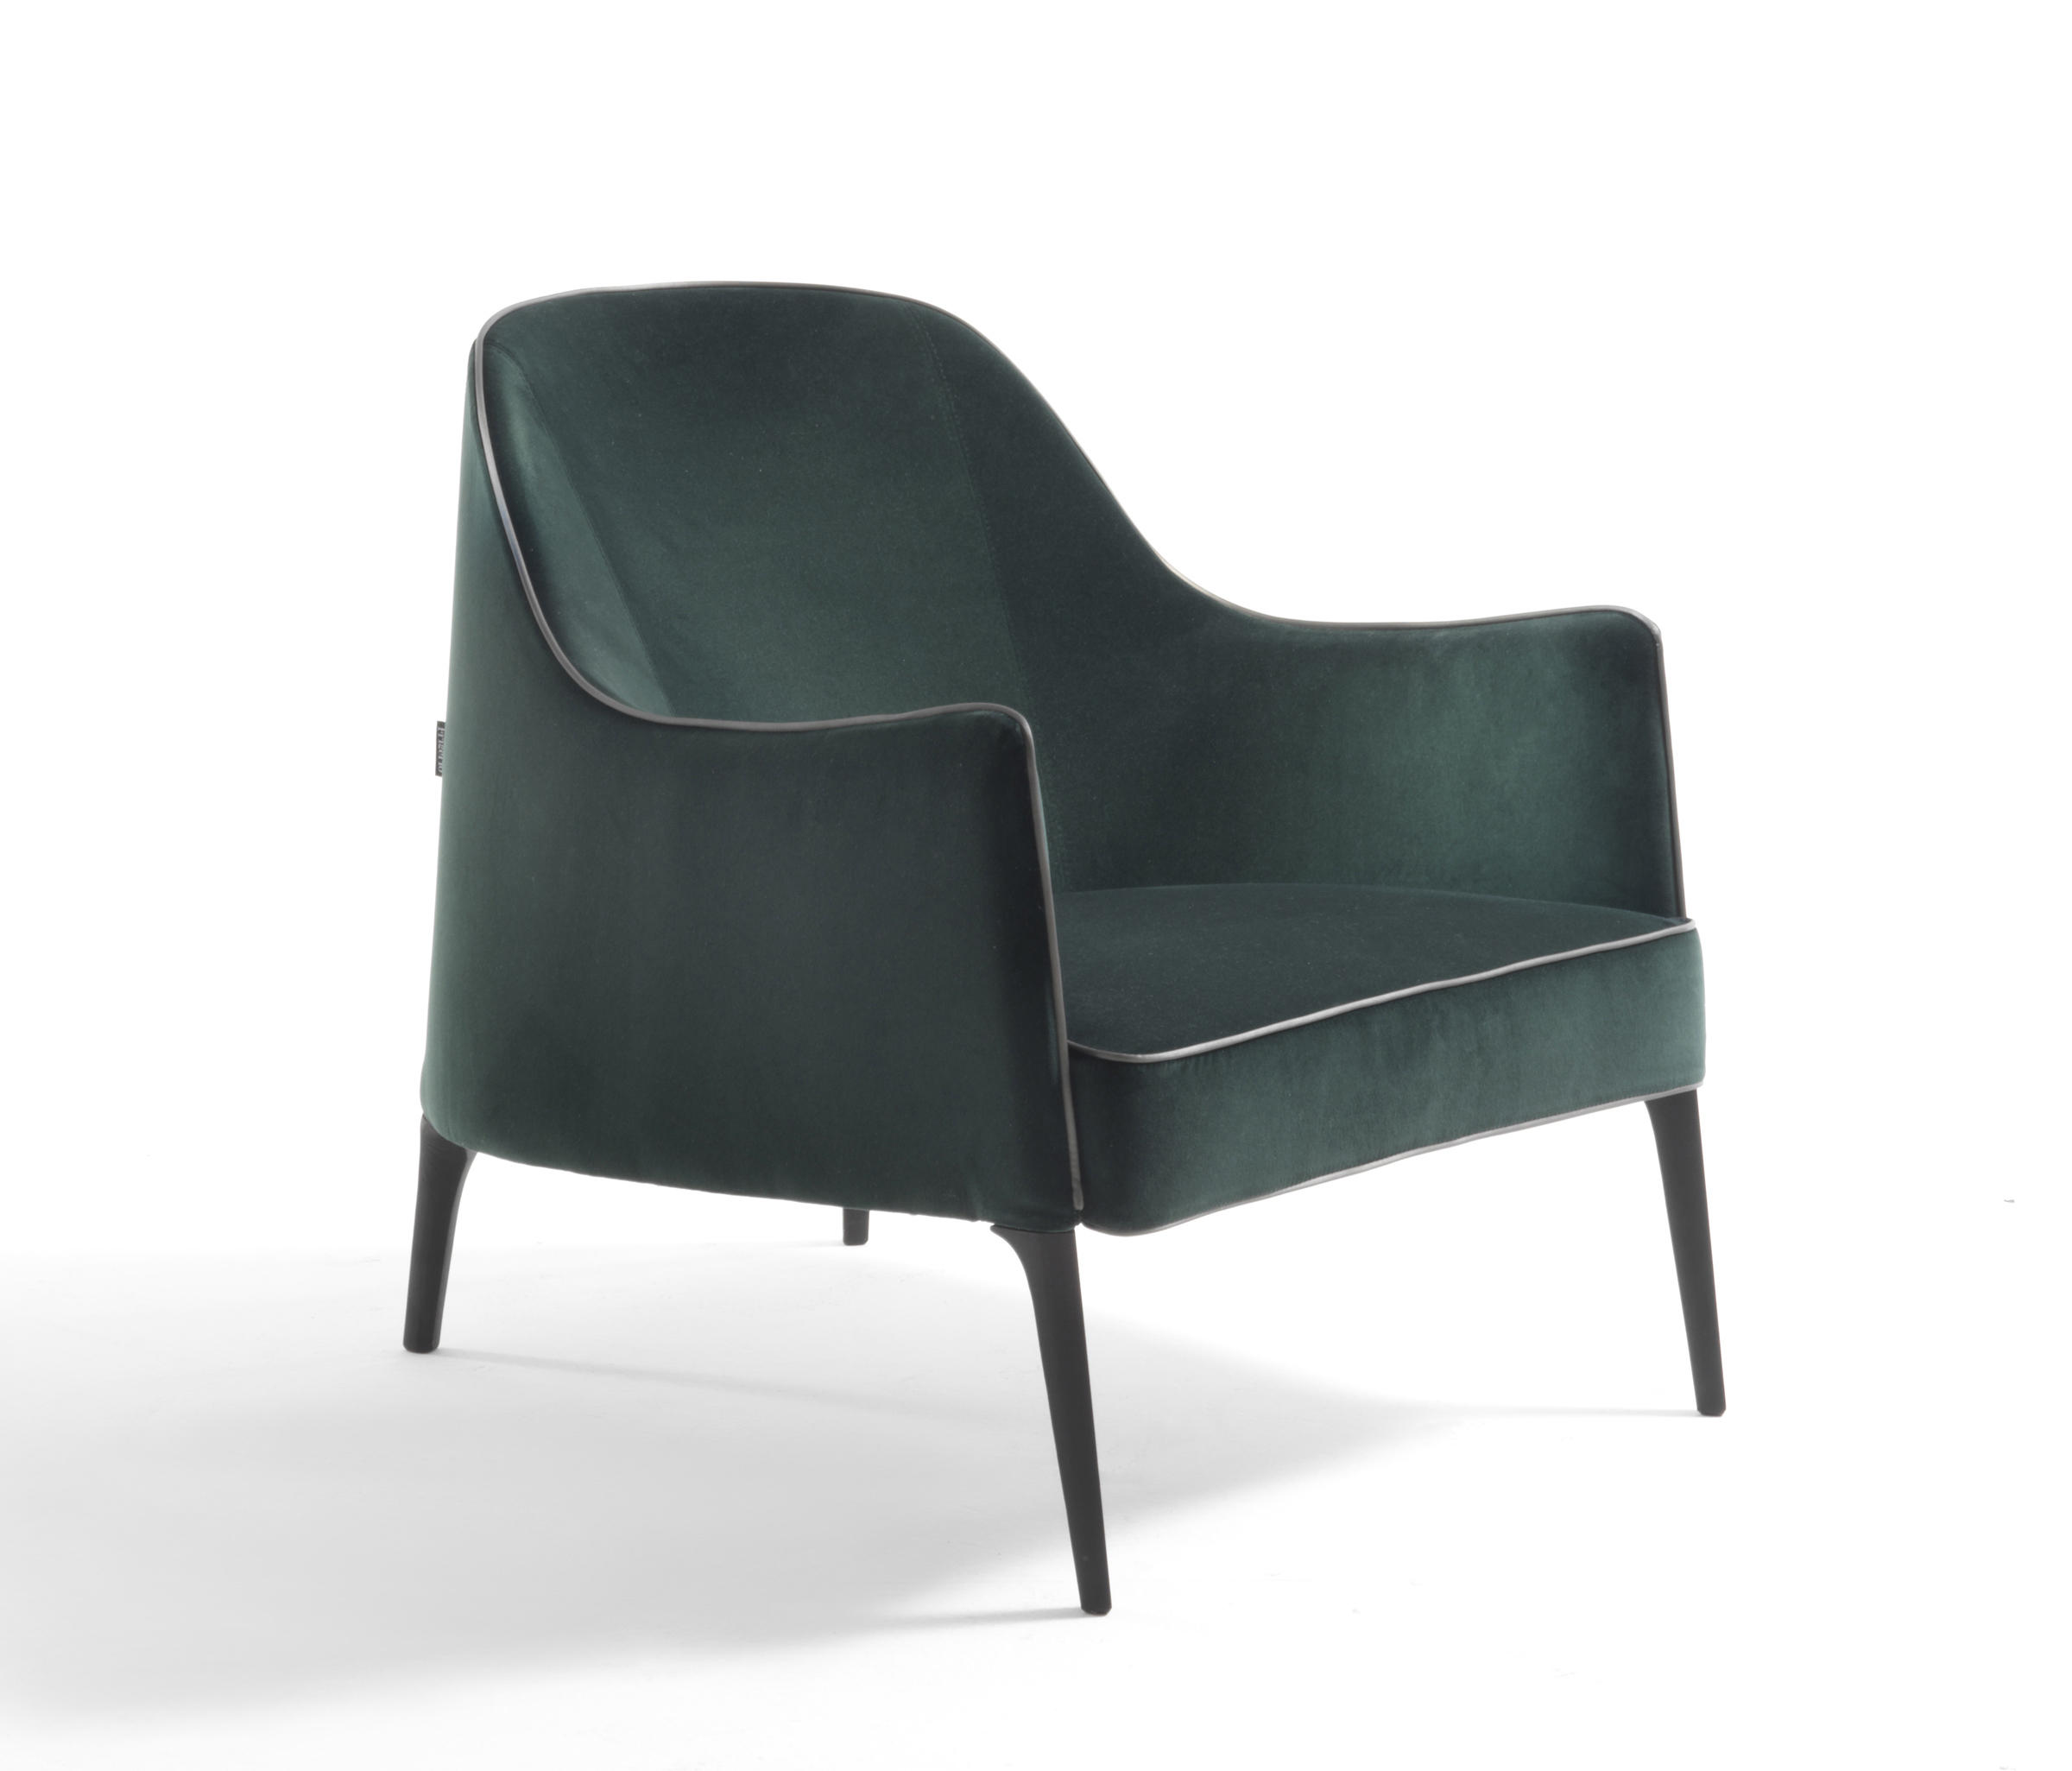 JACKIE BERGˆRE Lounge chairs from Frigerio